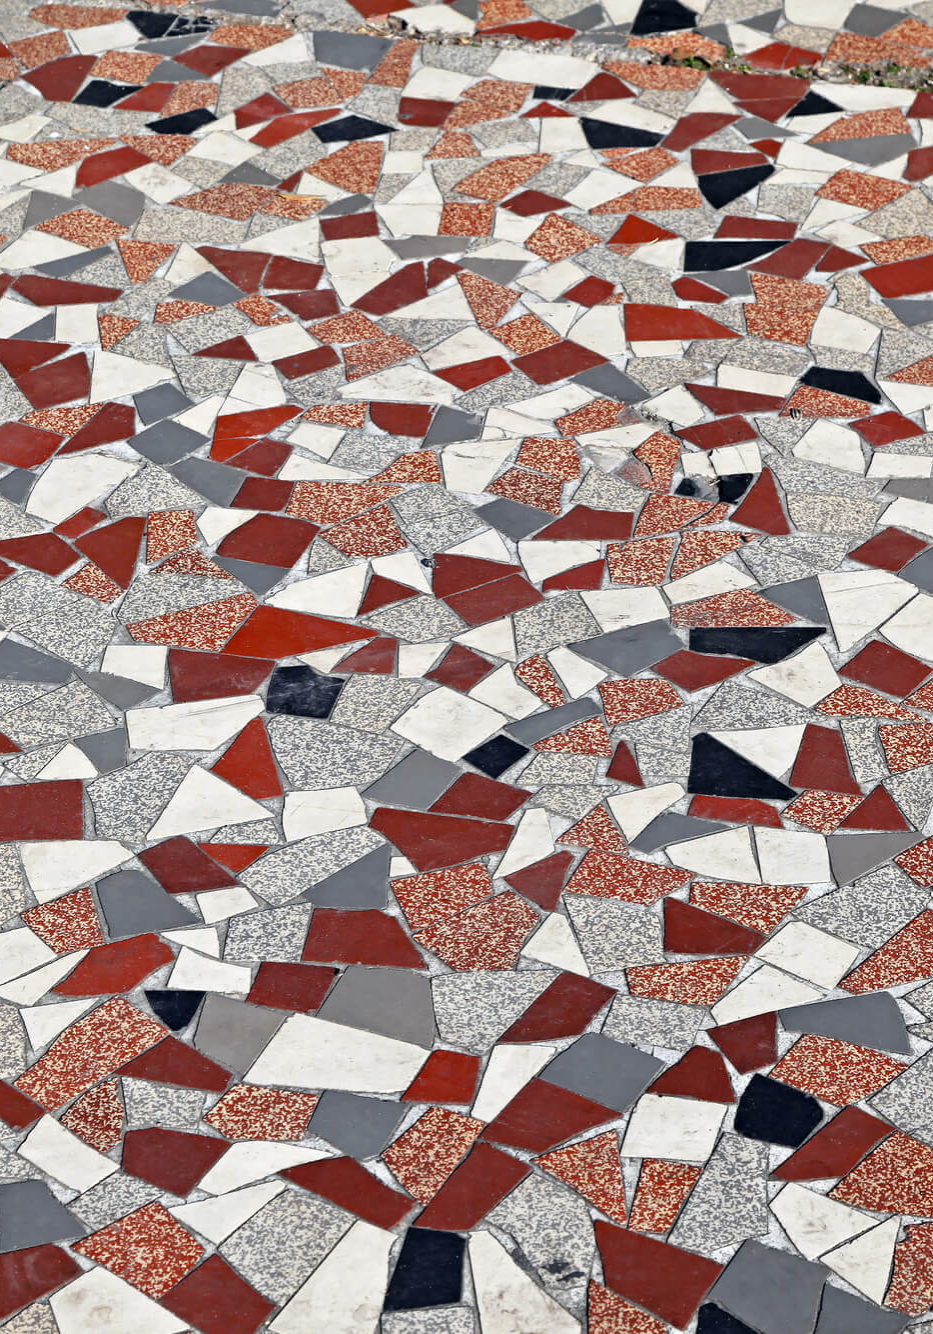 Terrazzo was created over 500 years ago when mid-16th century artisans began wondering what to do with odd-sized marble chips discarded during construction projects. Lovely to look at, but essentially leftovers, an inspired idea was born. Why not used the marble remnants to build terraces that would bring added luxury to their own working-class homes?